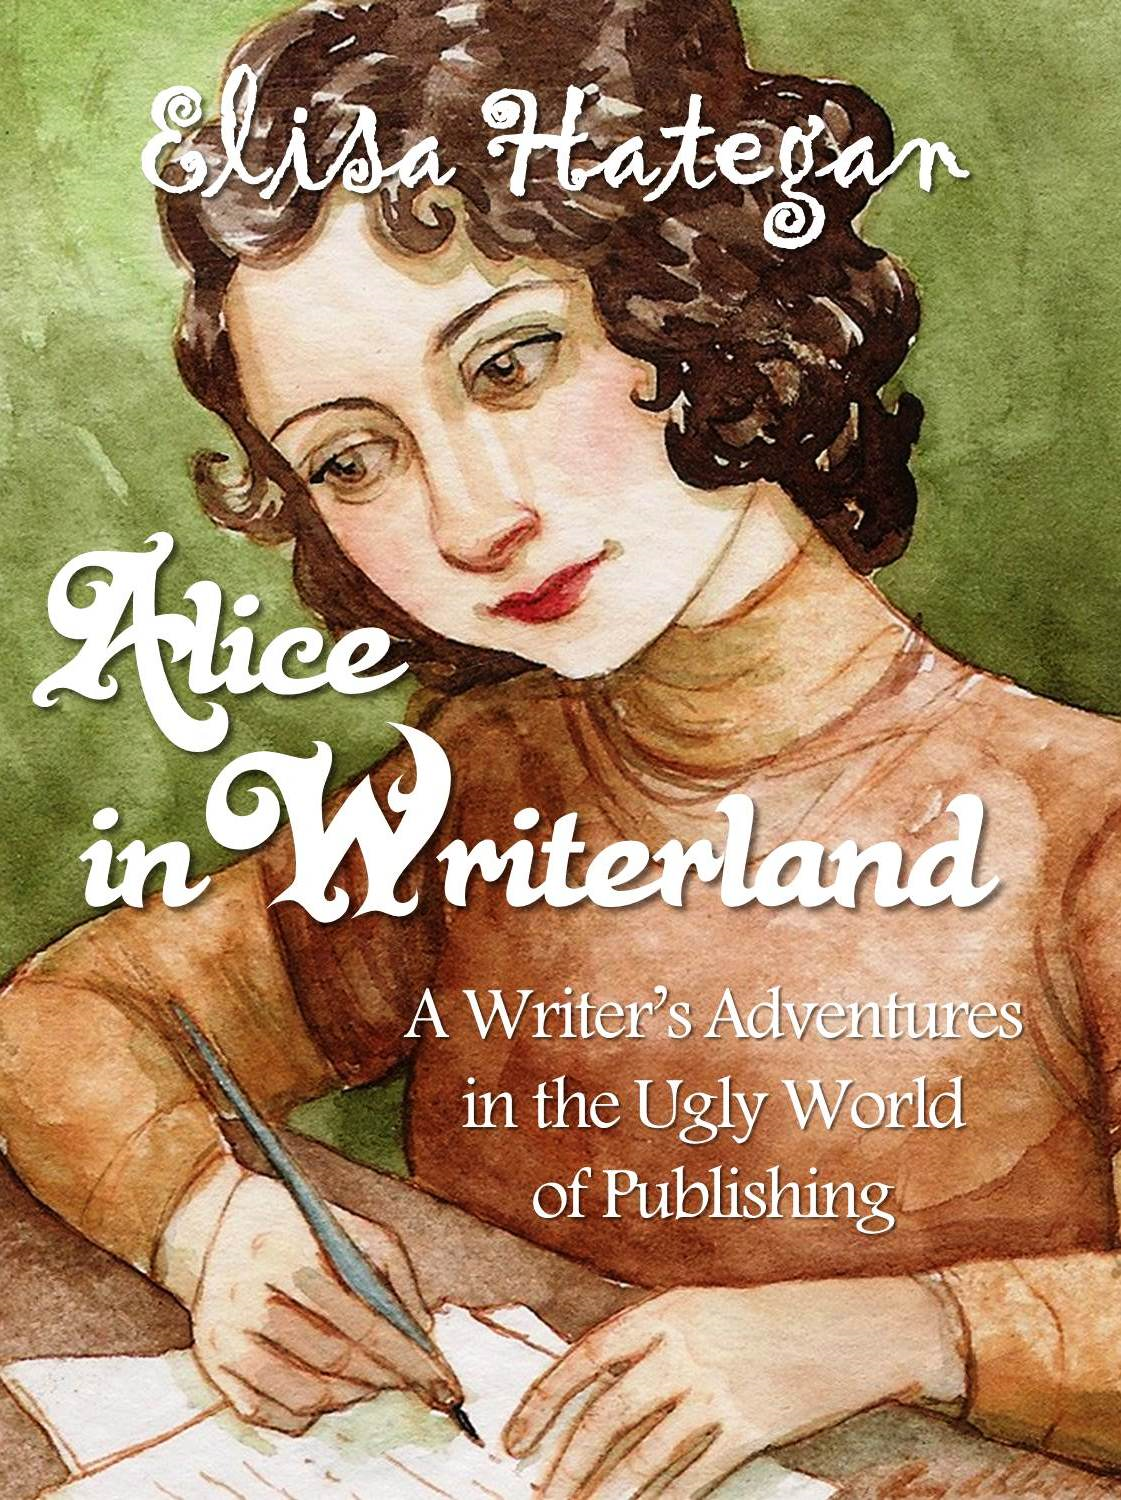 Alice in Writerland: A Writer's Adventures In The Ugly World Of Publishing By: Elisa Hategan